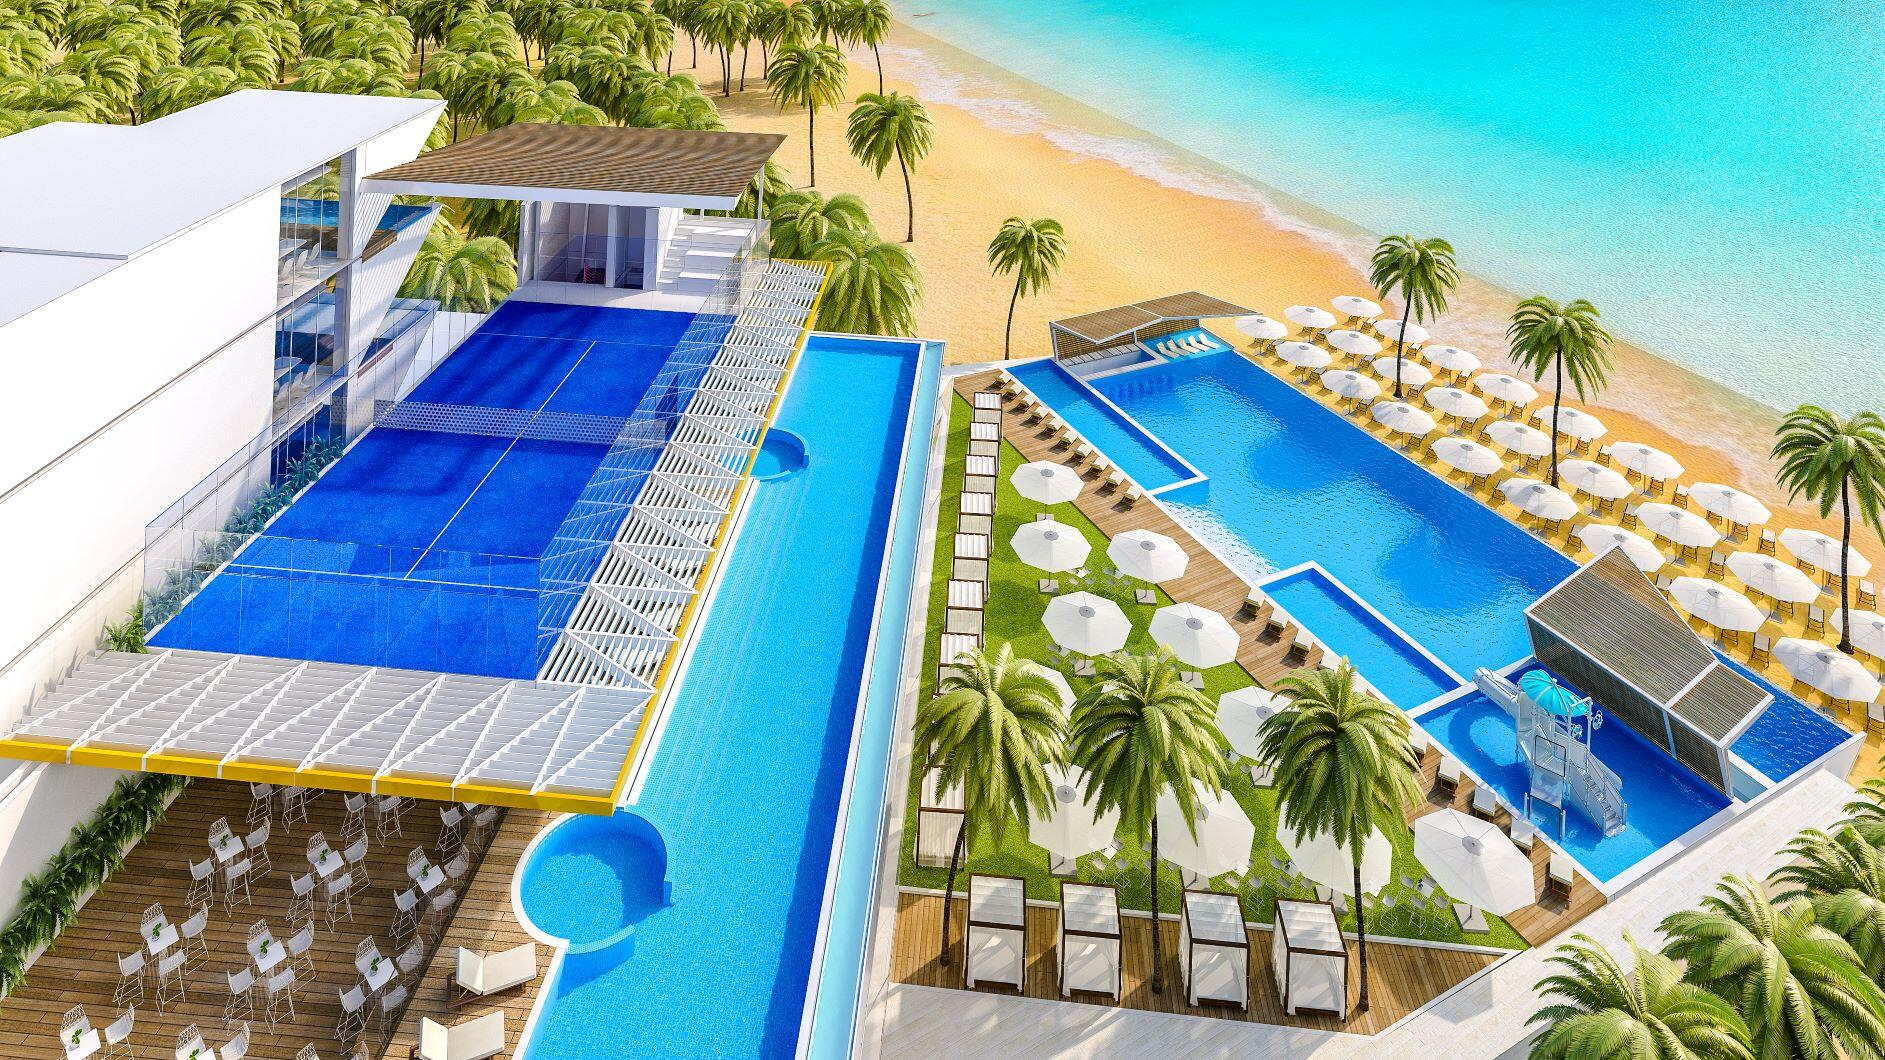 AURA SMART LUXURY LIVING. Exclusivo Club de Playa en Telchac Puerto